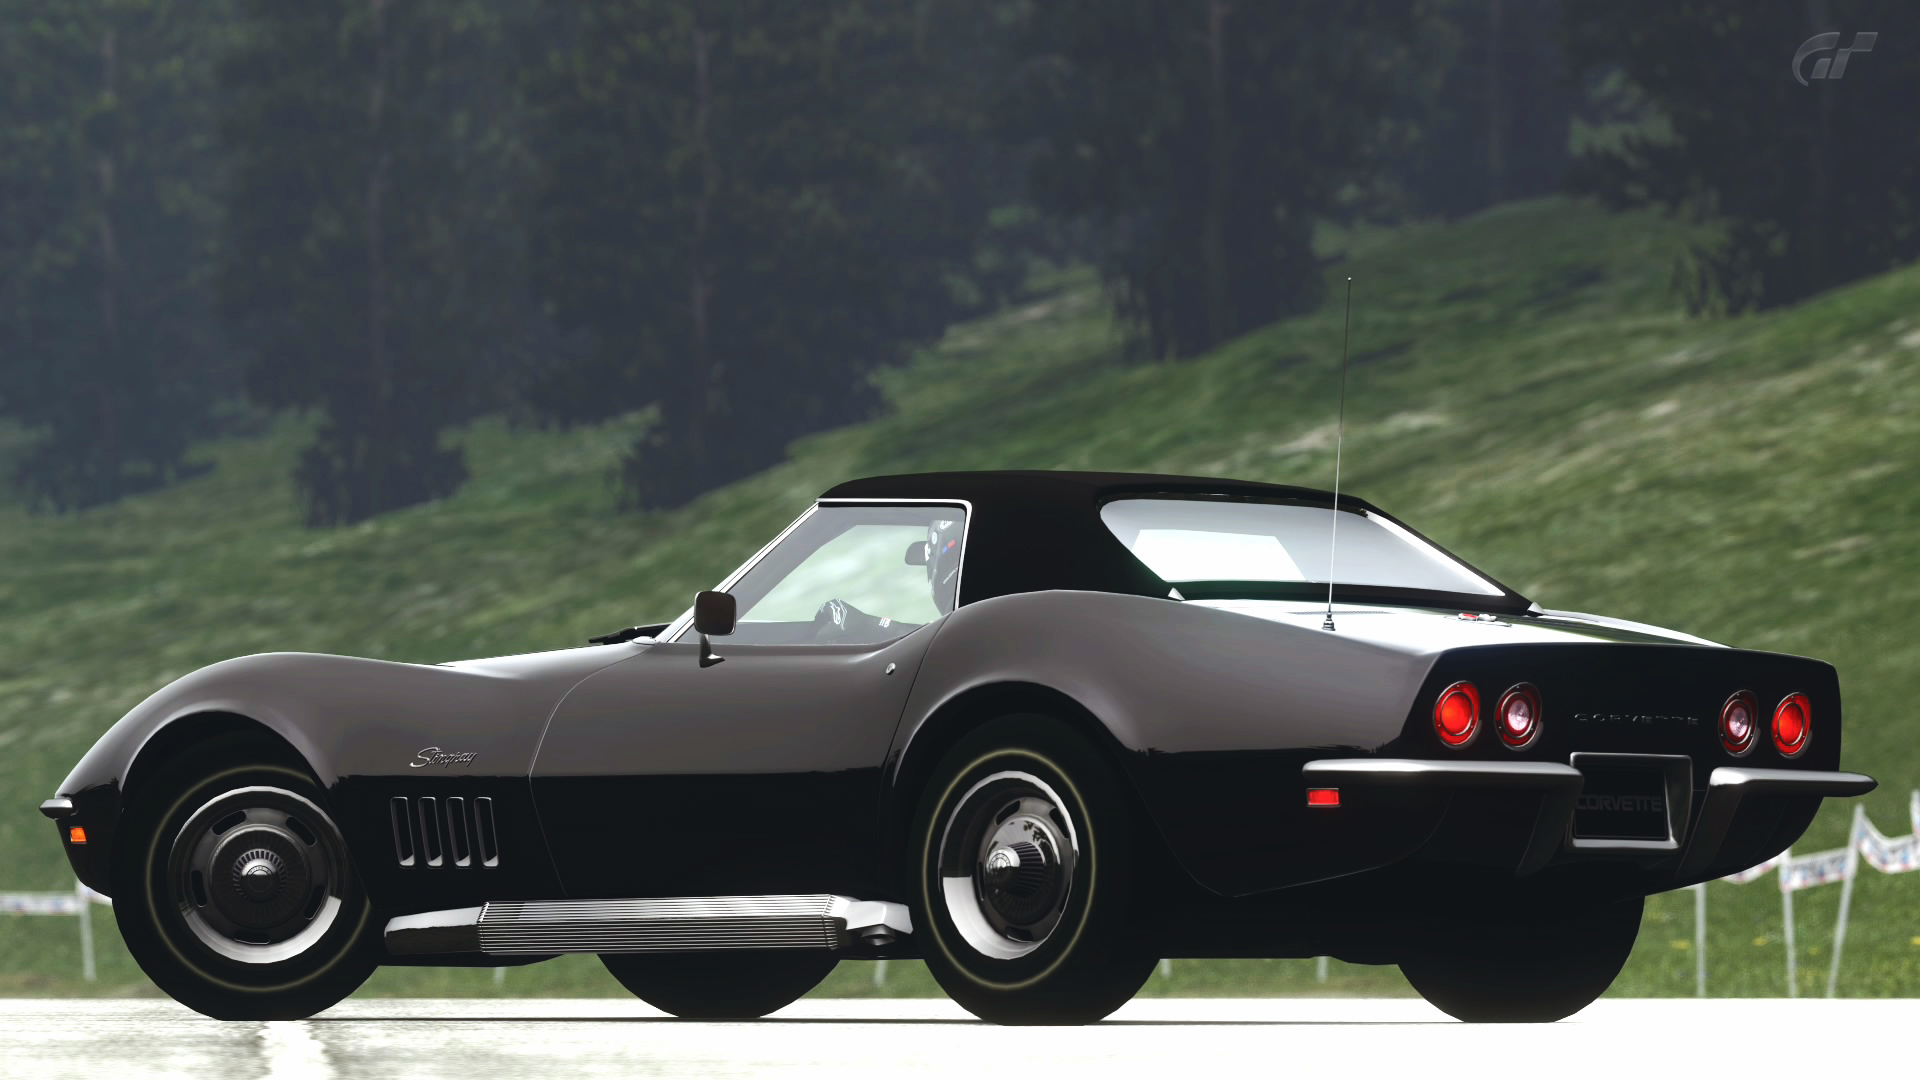 1969 corvette stingray wallpaper stingray wallpaper 1969. Cars Review. Best American Auto & Cars Review